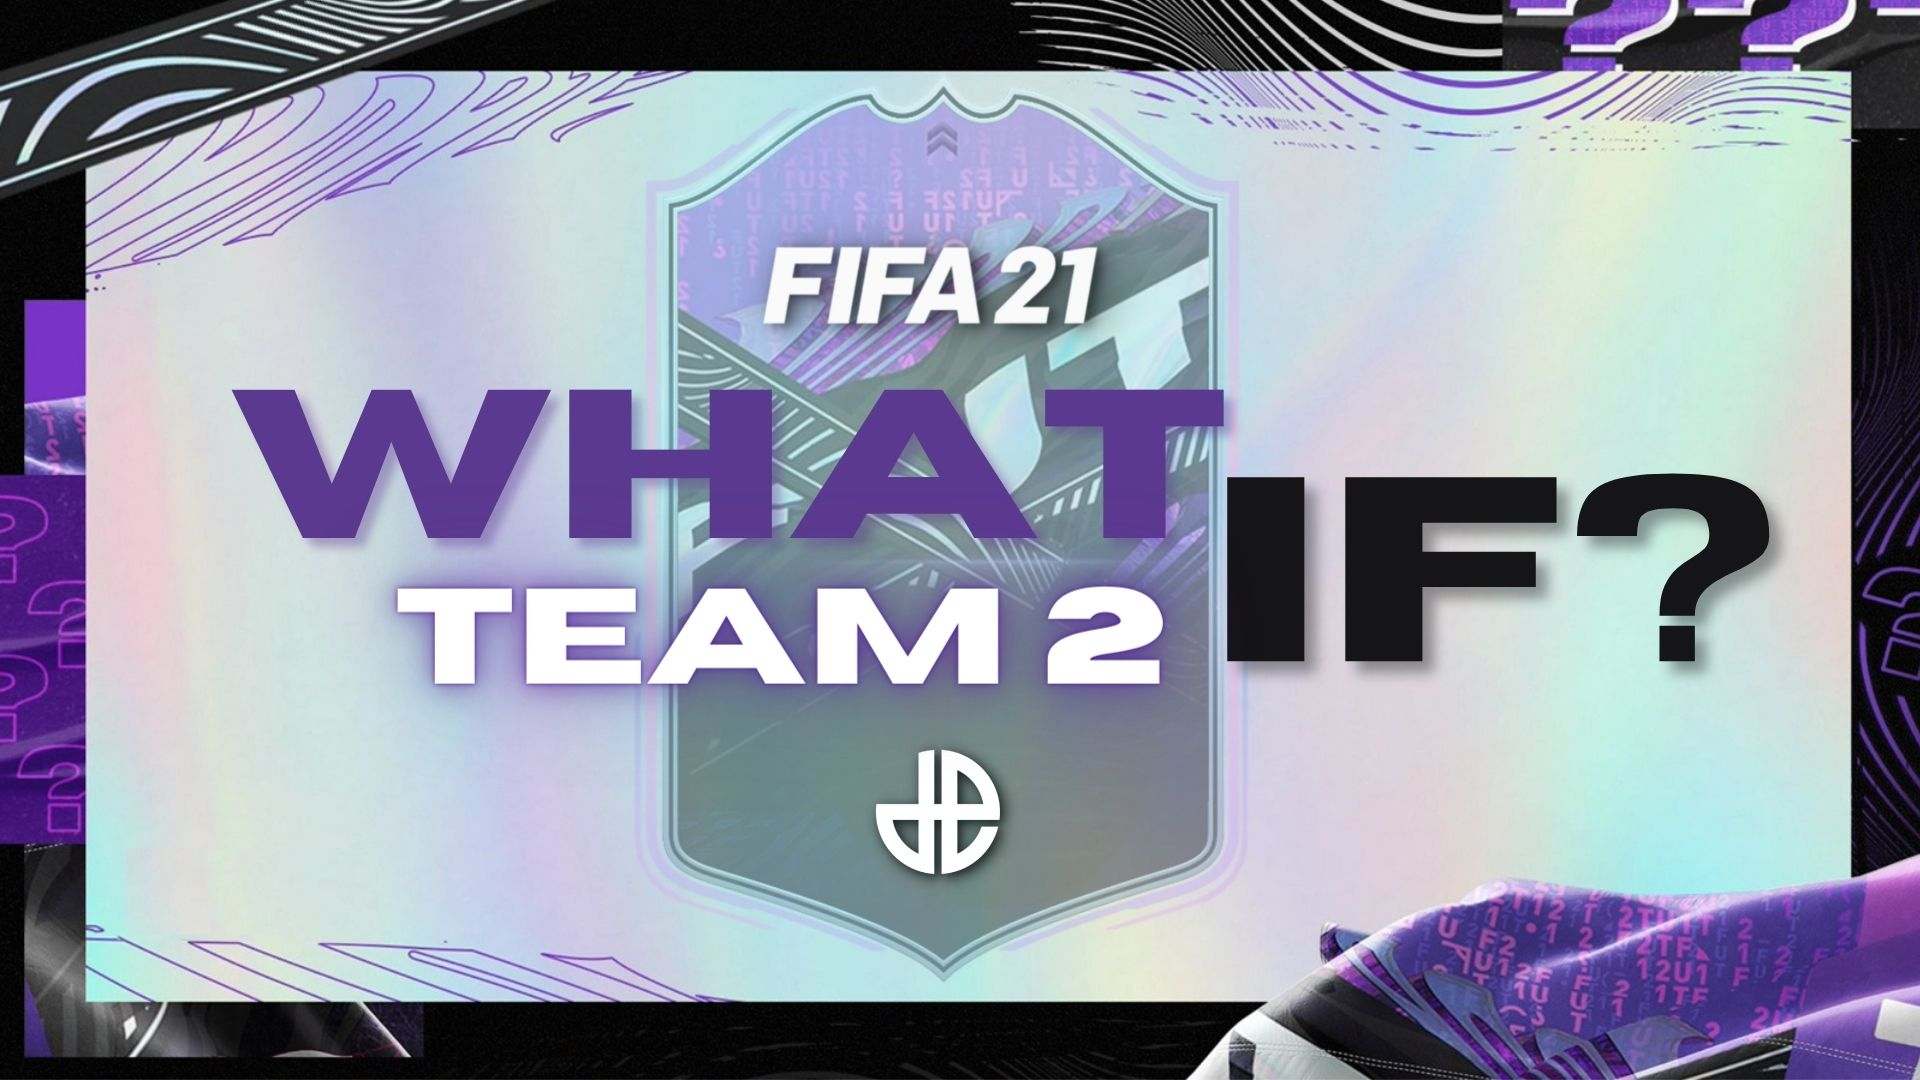 FIFA 21 What If Team 2 promo on its way.